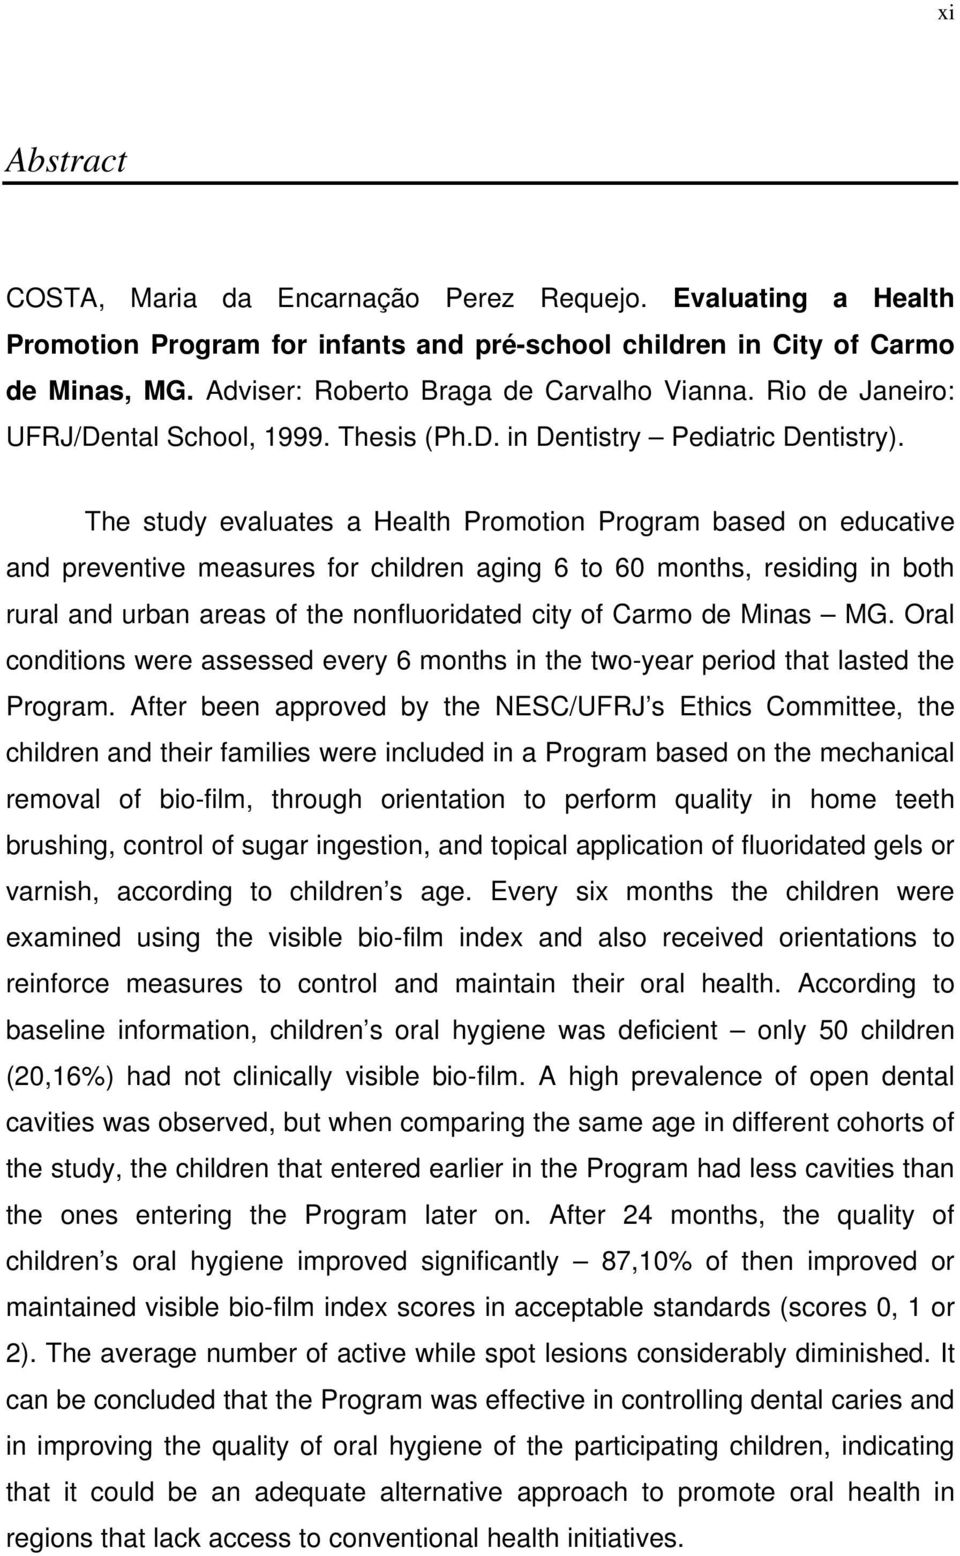 The study evaluates a Health Promotion Program based on educative and preventive measures for children aging 6 to 60 months, residing in both rural and urban areas of the nonfluoridated city of Carmo